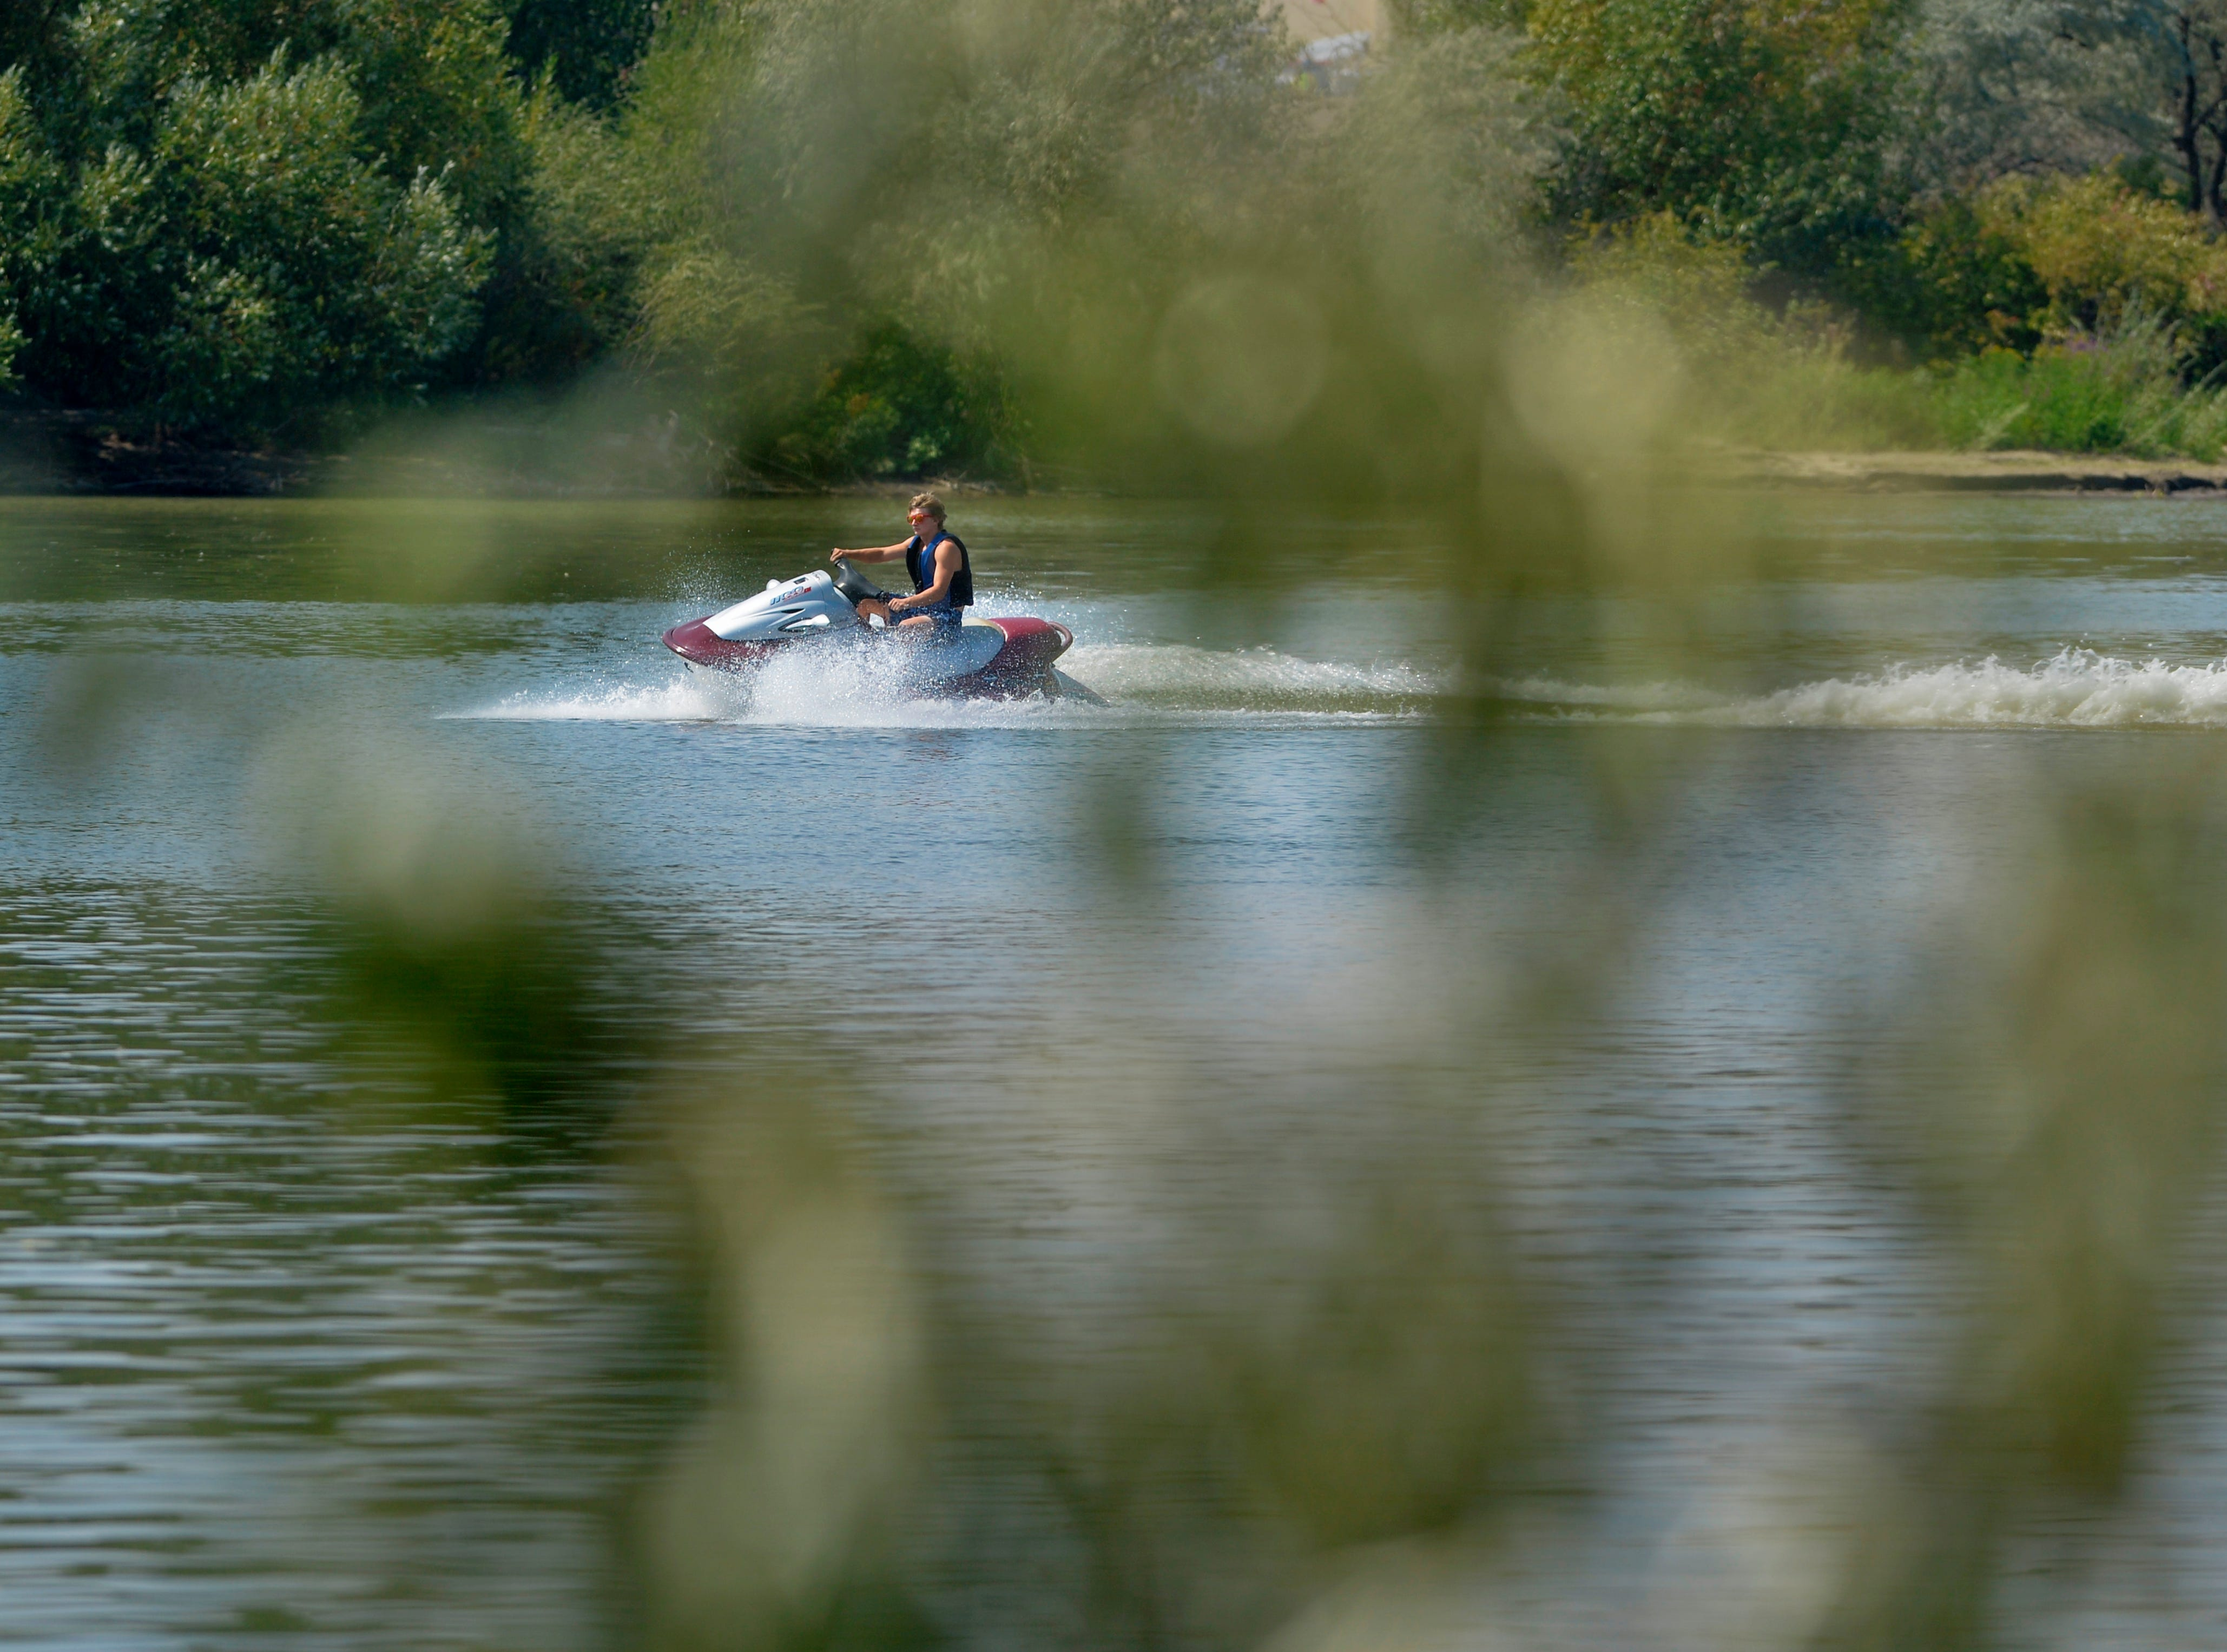 A boater on a personal watercraft enjoys zipping around Broadwater Bay, Thursday afternoon as temperatures approach 100 degrees.